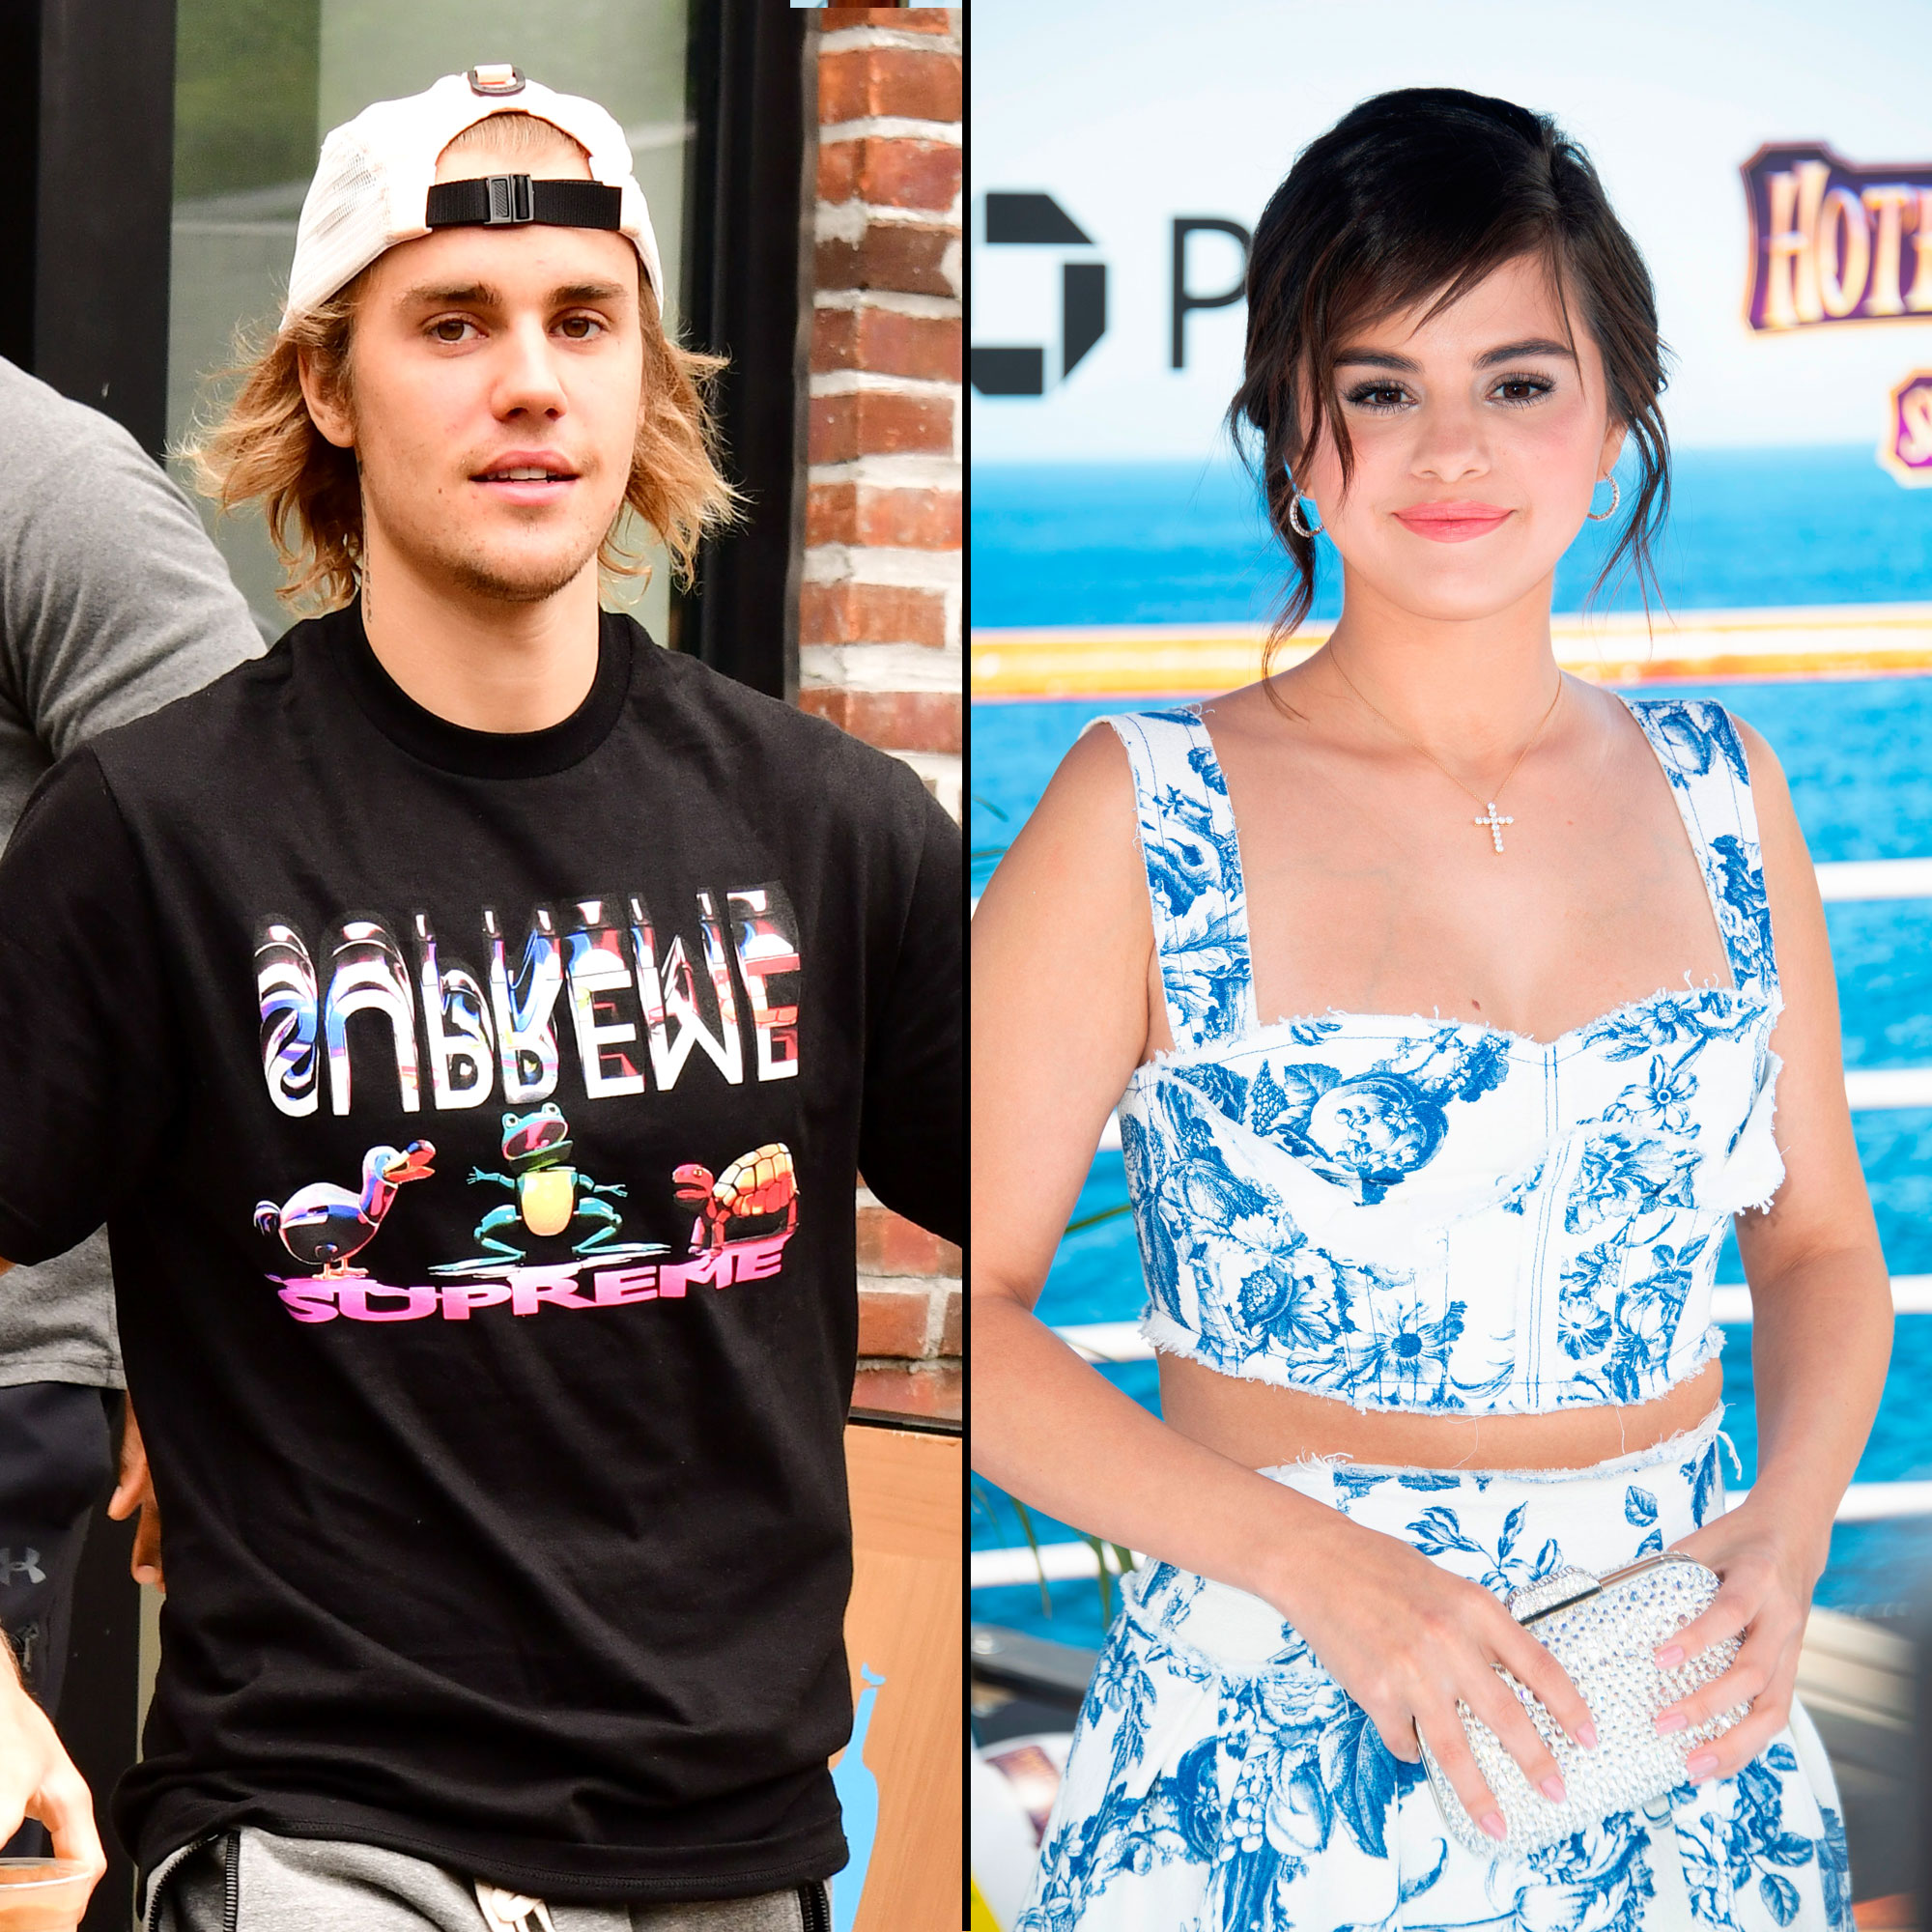 Justin Bieber and Selena Gomez IG Suggests he Follow her - Justin Bieber and Selena Gomez